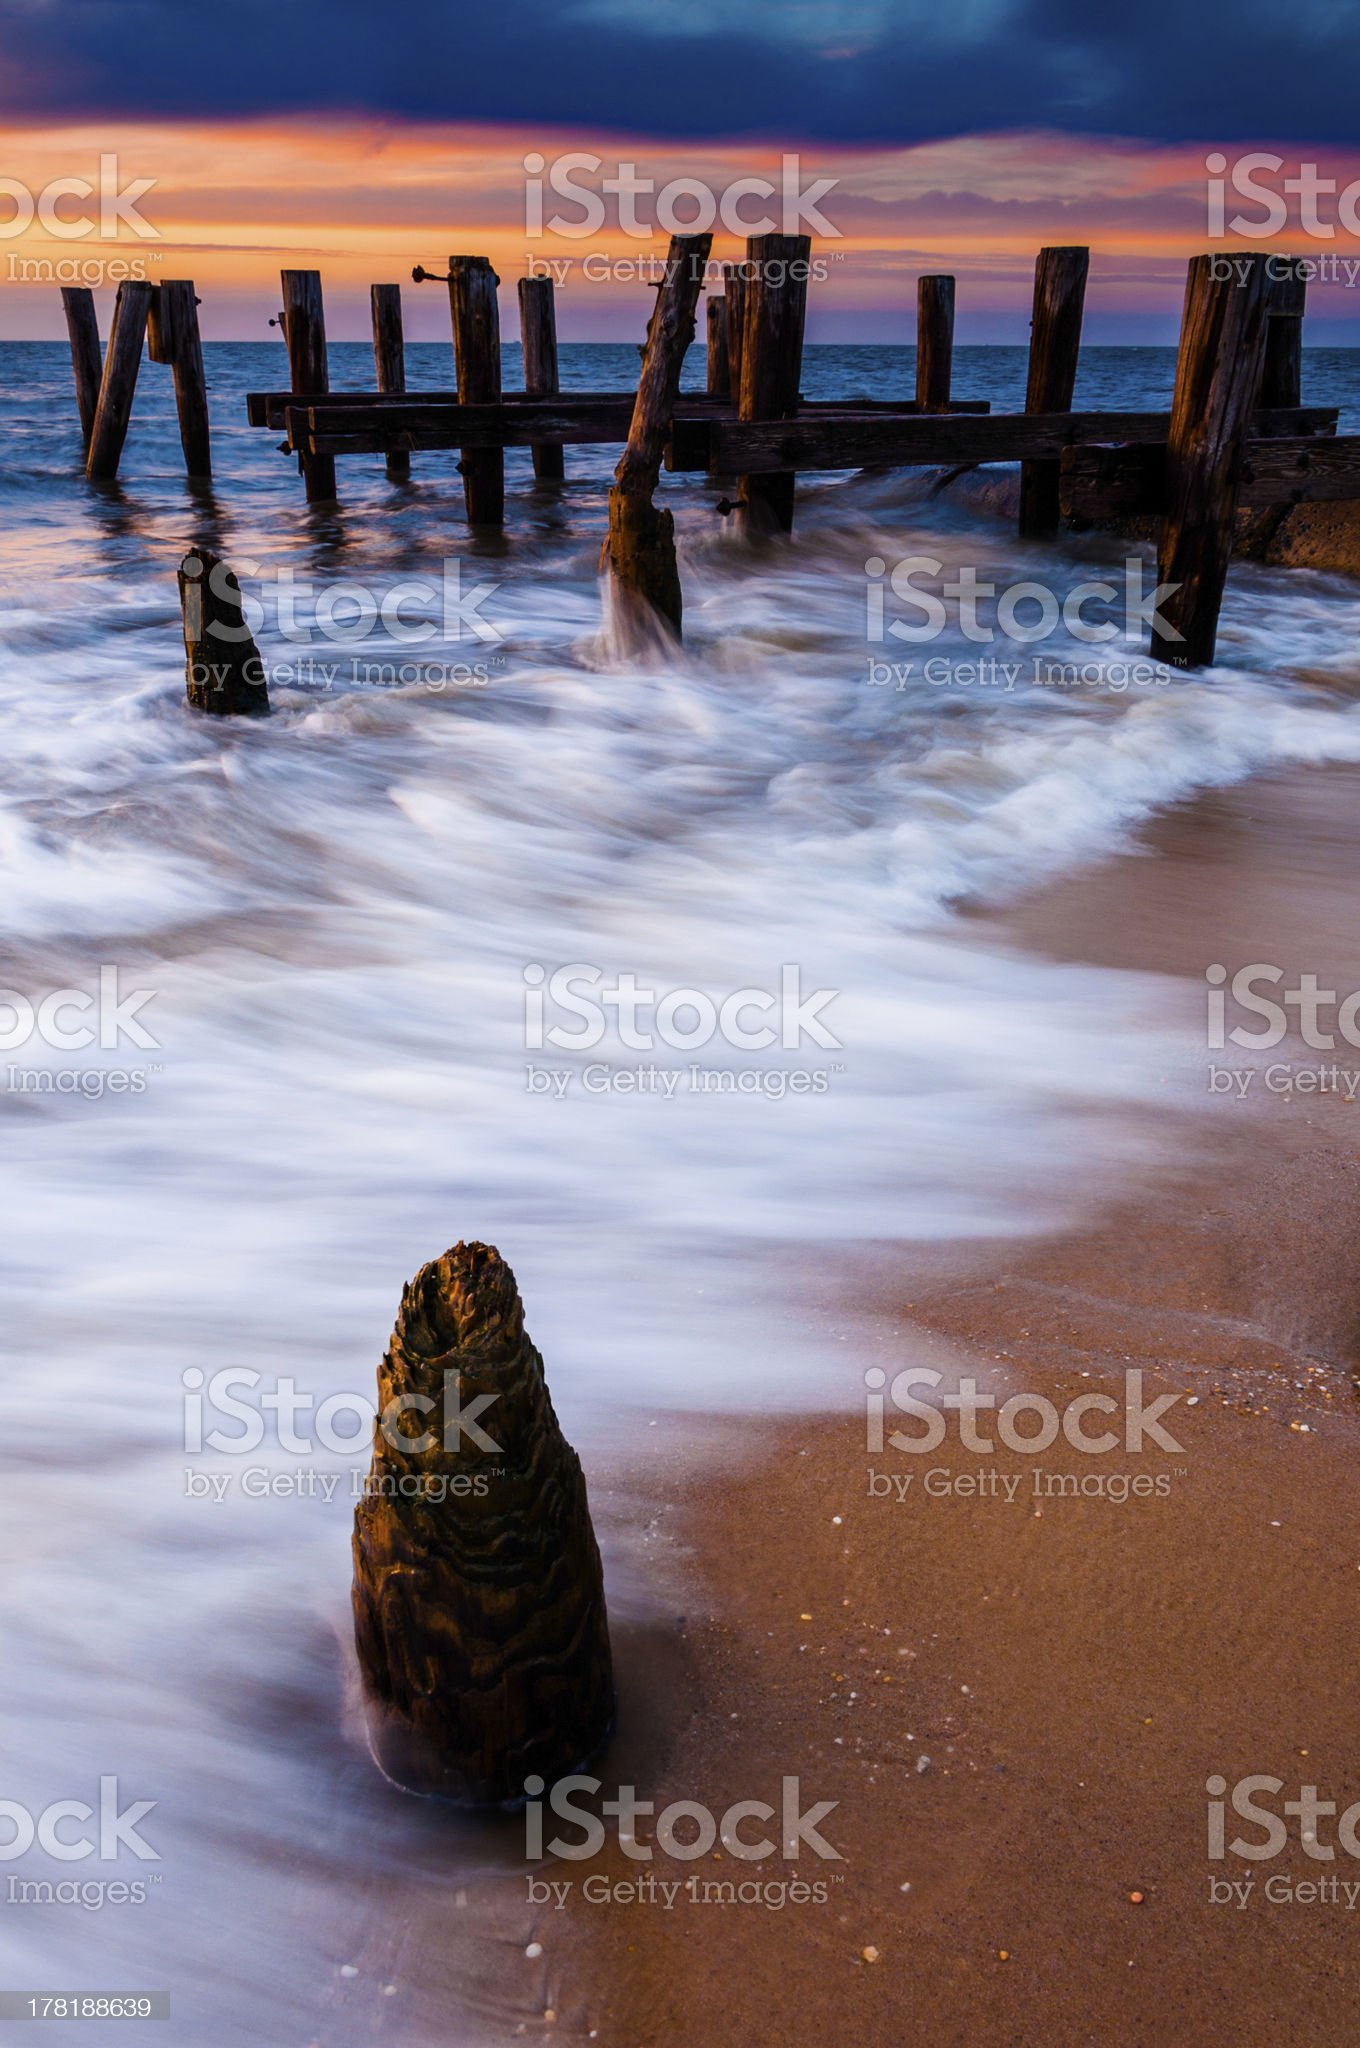 Waves swirl around pier pilings at sunset, Cape May, NJ. royalty-free stock photo